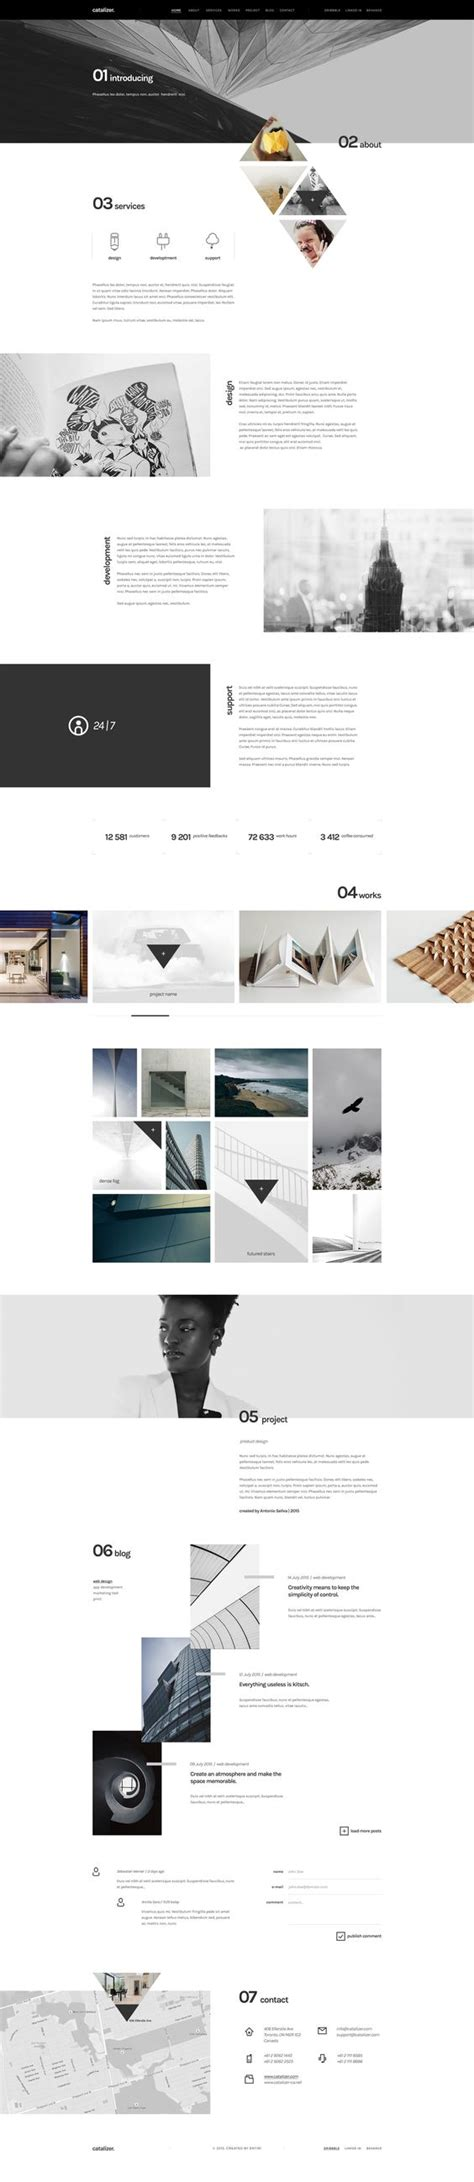 themeforest template design catalizer creative single page template psd templates